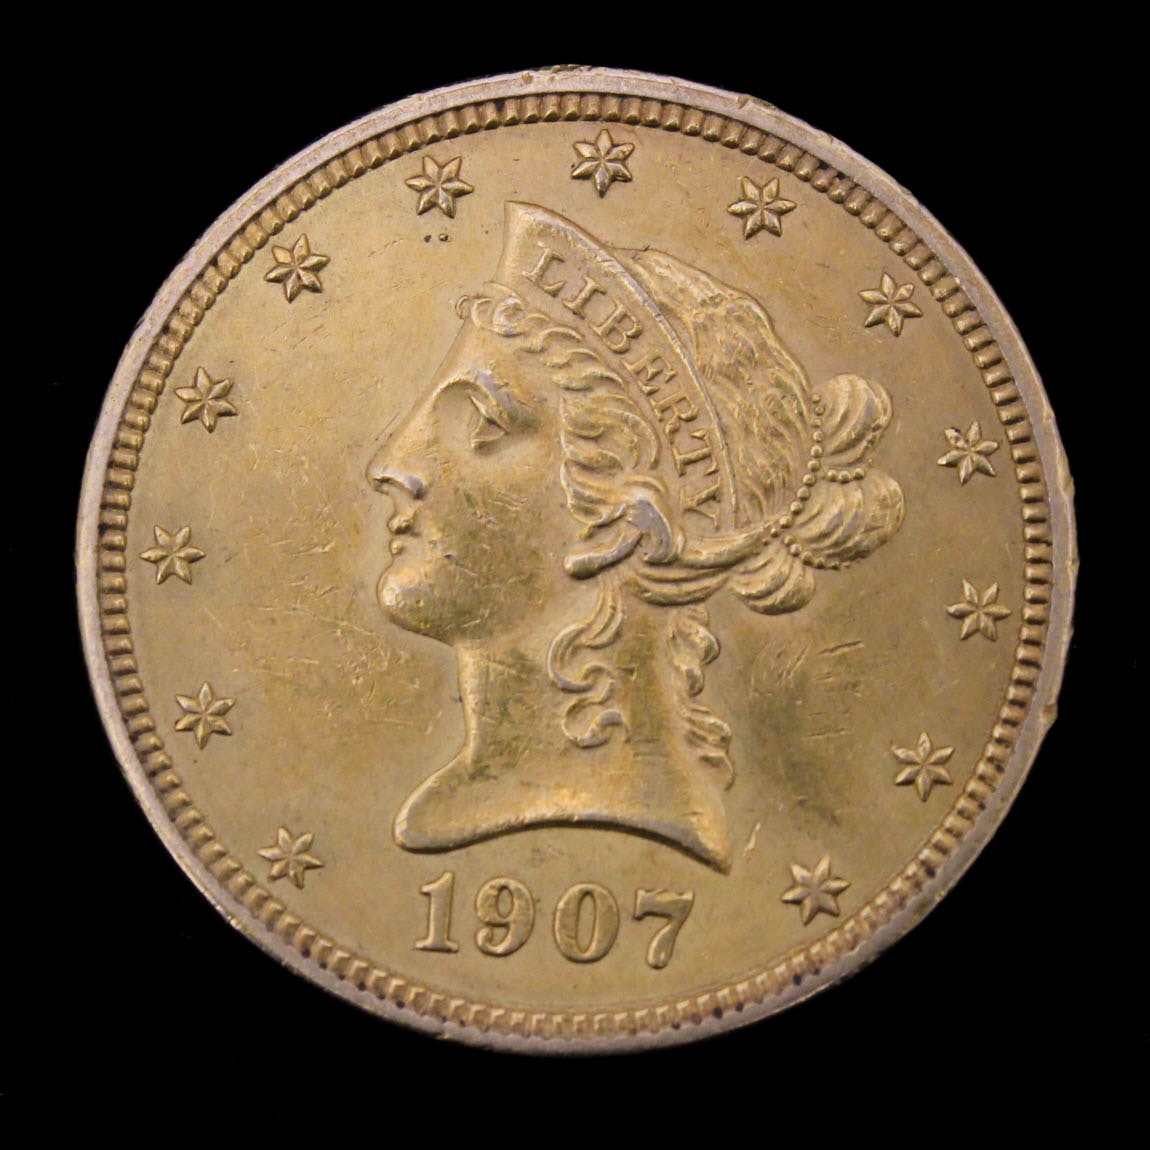 1907 Coronet Head Gold $10 Eagle